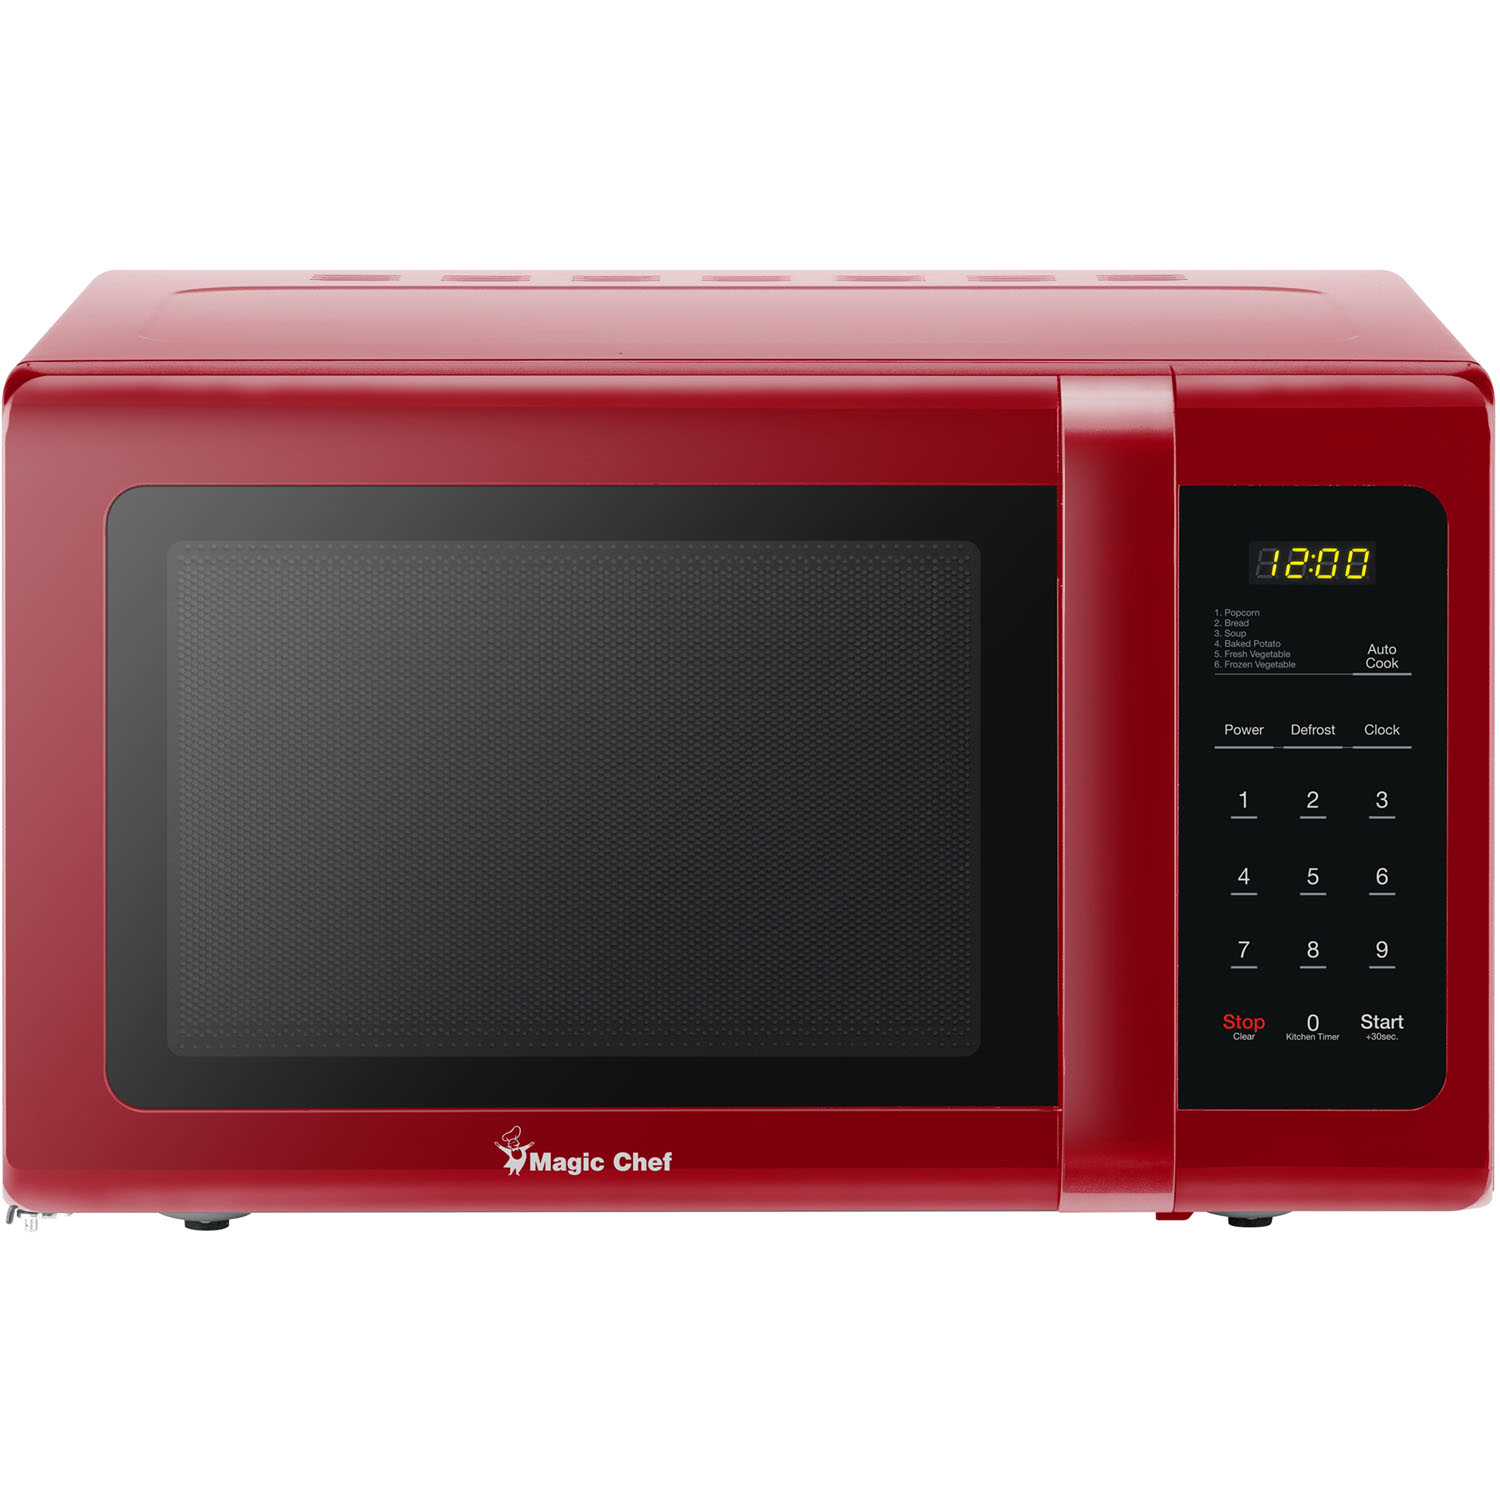 magic chef 0 9 cu ft 900w countertop microwave oven in red